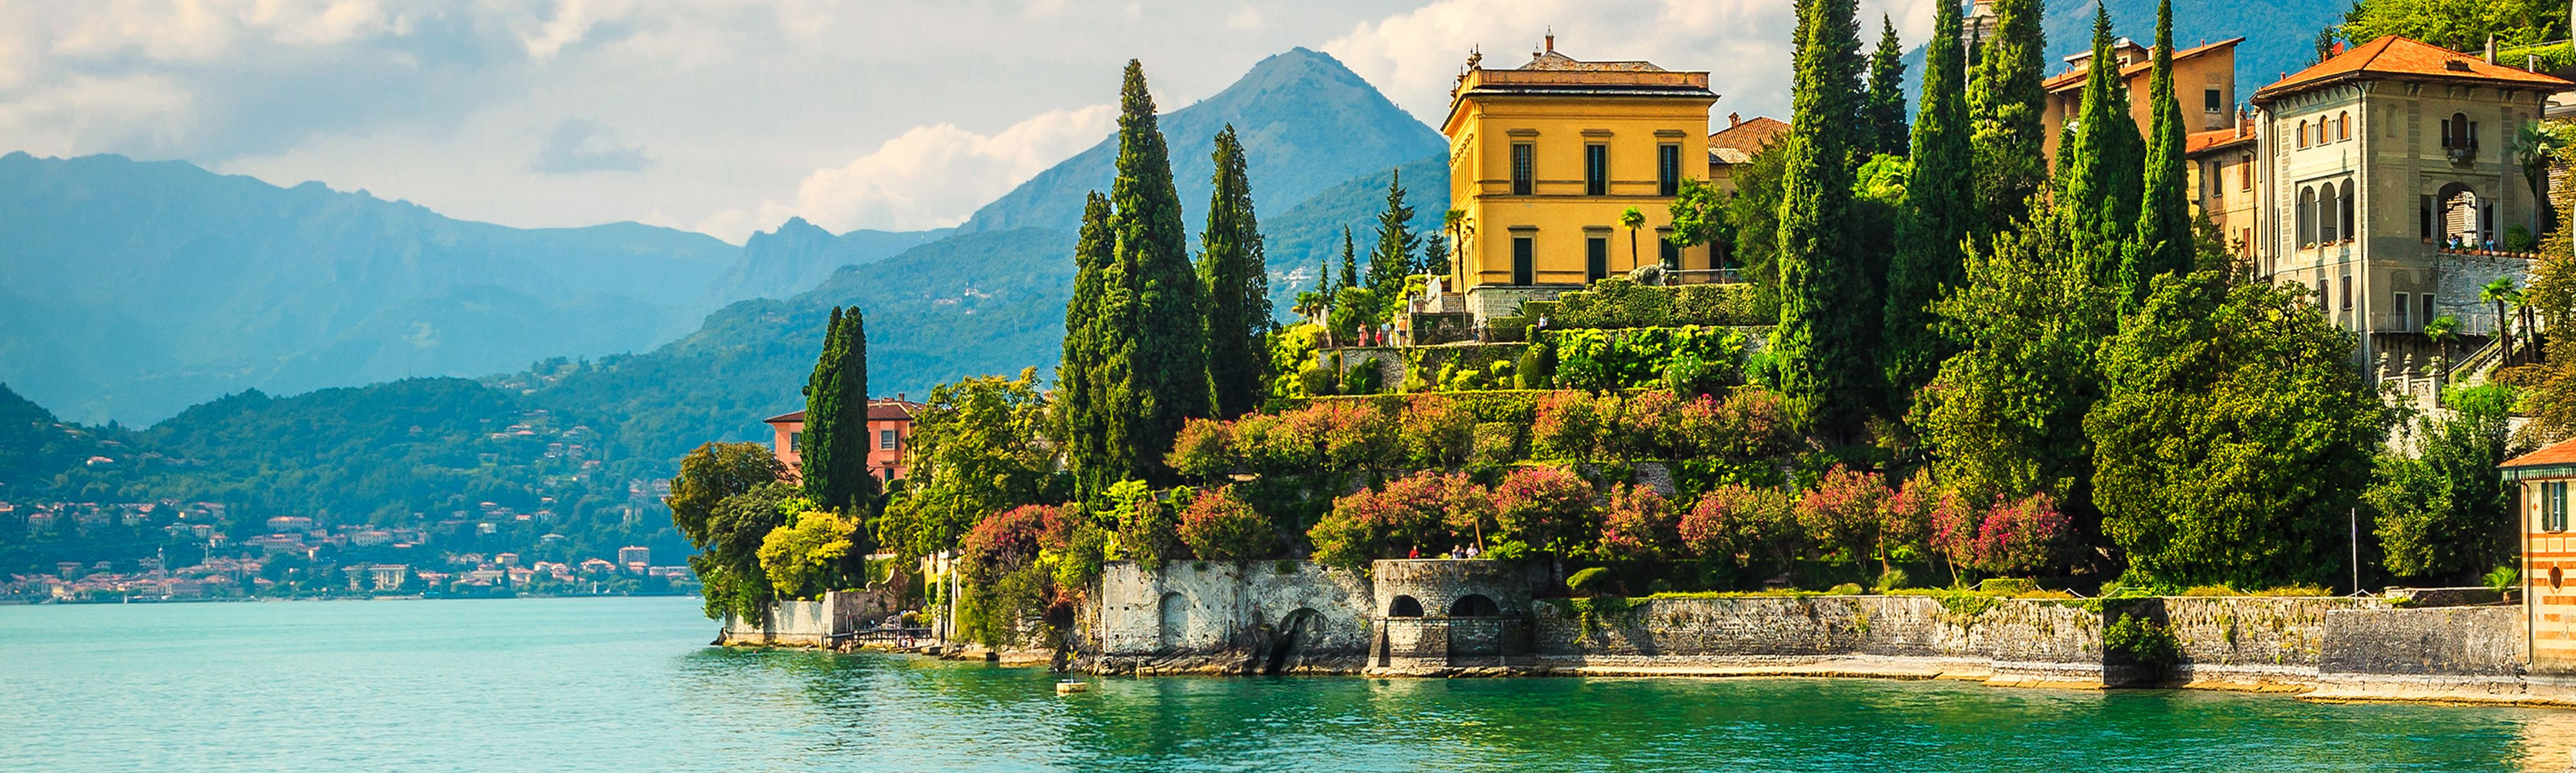 Villa Monastero with Mediterranean flowers at Lake Como, Italy